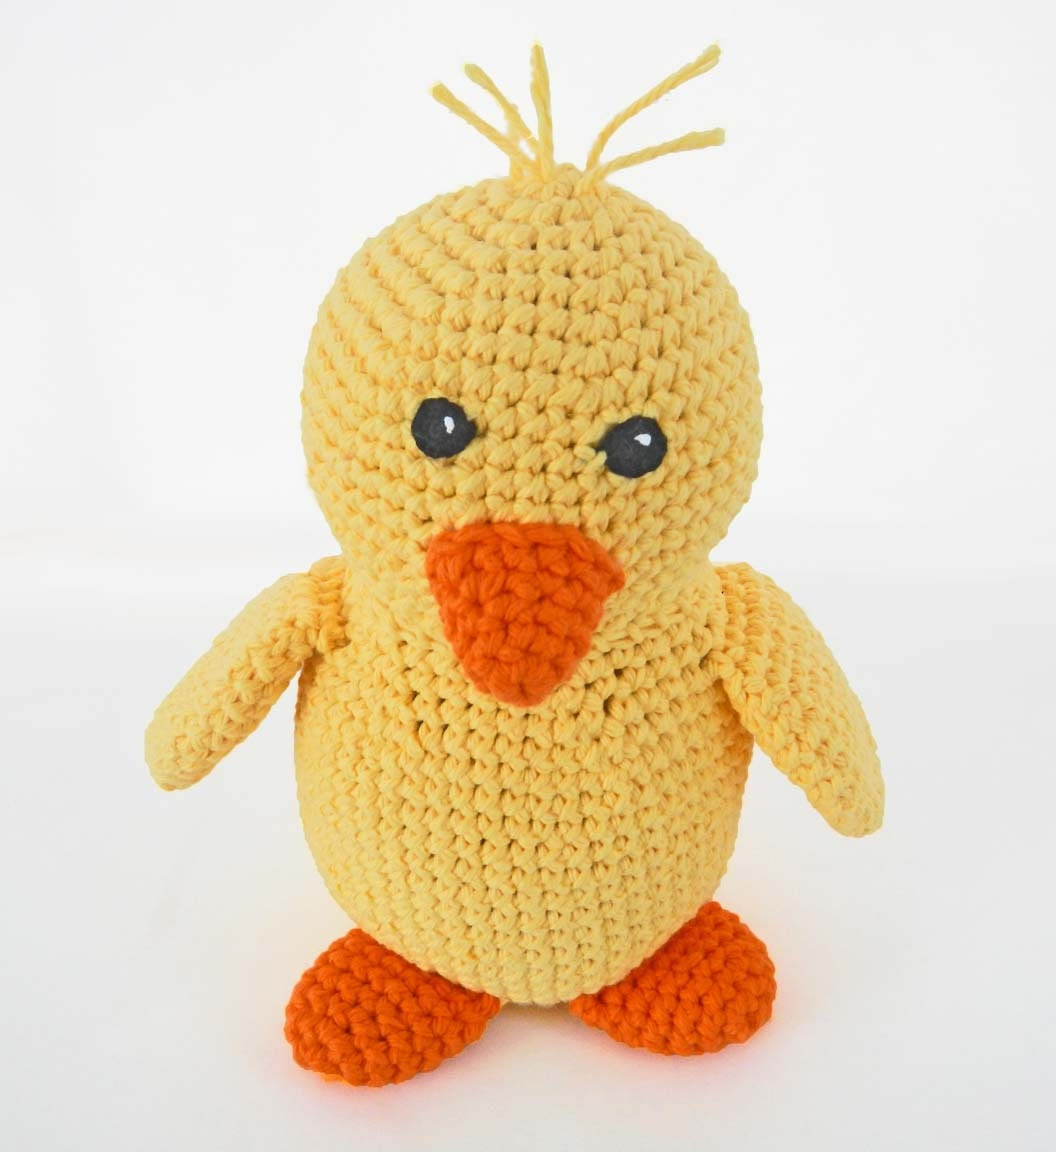 Amigurumi Duckling : Crochet Duck Amigurumi Pattern Kawaii Baby Chick Toy Stuffed